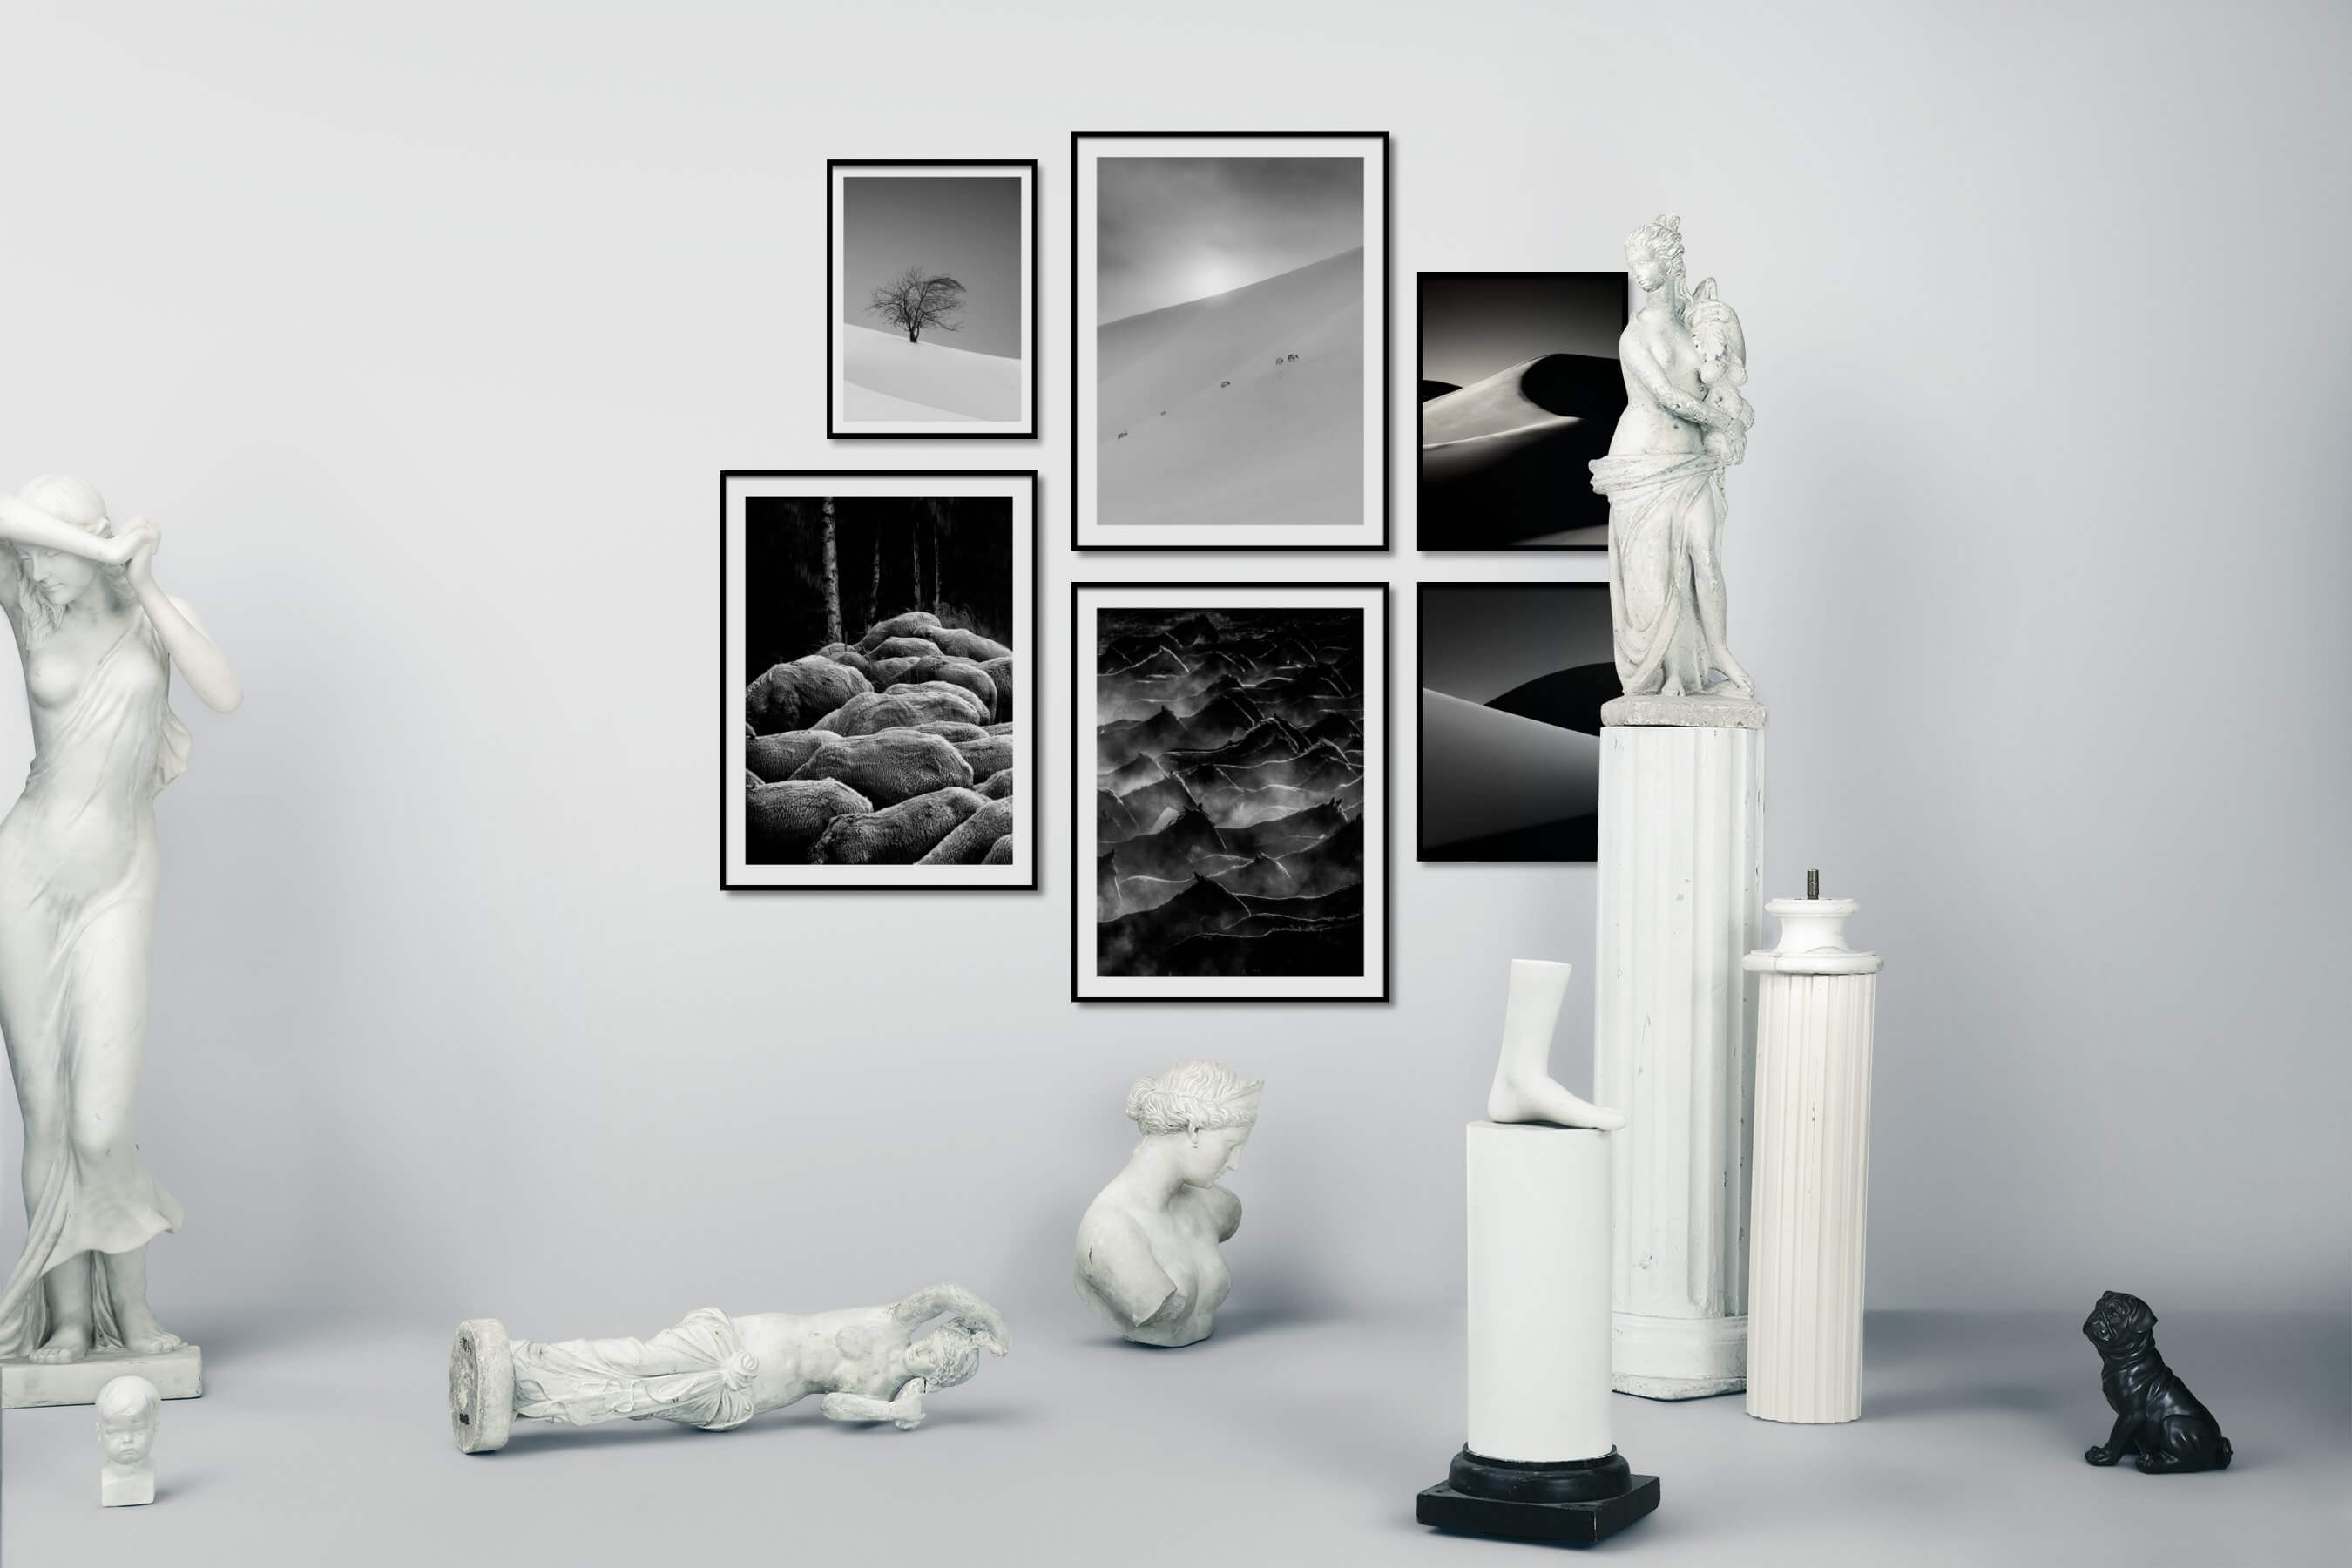 Gallery wall idea with six framed pictures arranged on a wall depicting Black & White, For the Minimalist, Nature, Animals, Country Life, and For the Moderate